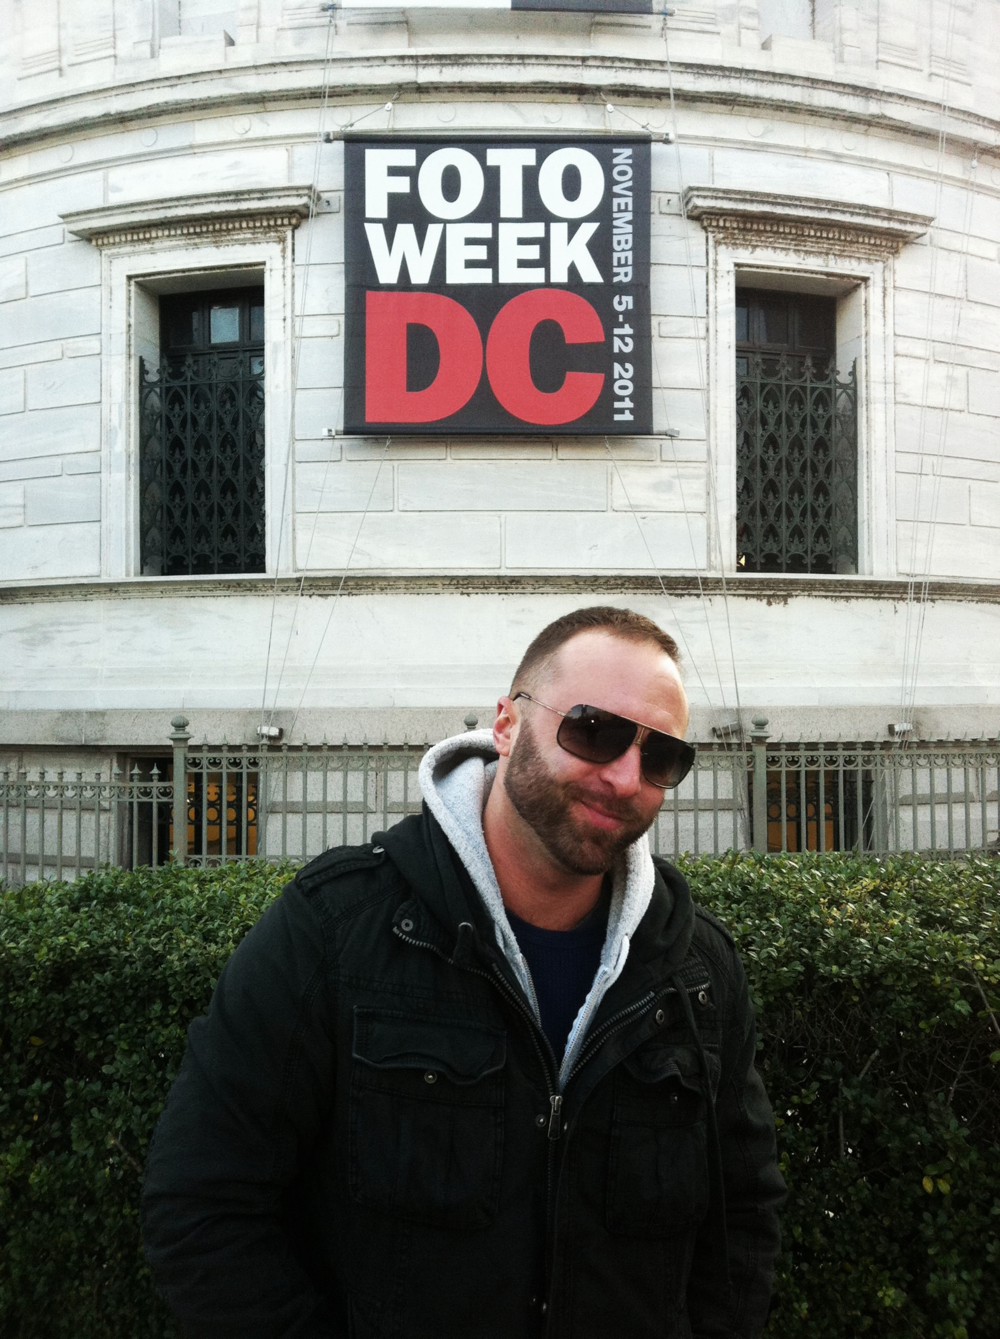 Photo displayed for Foto Week DC.